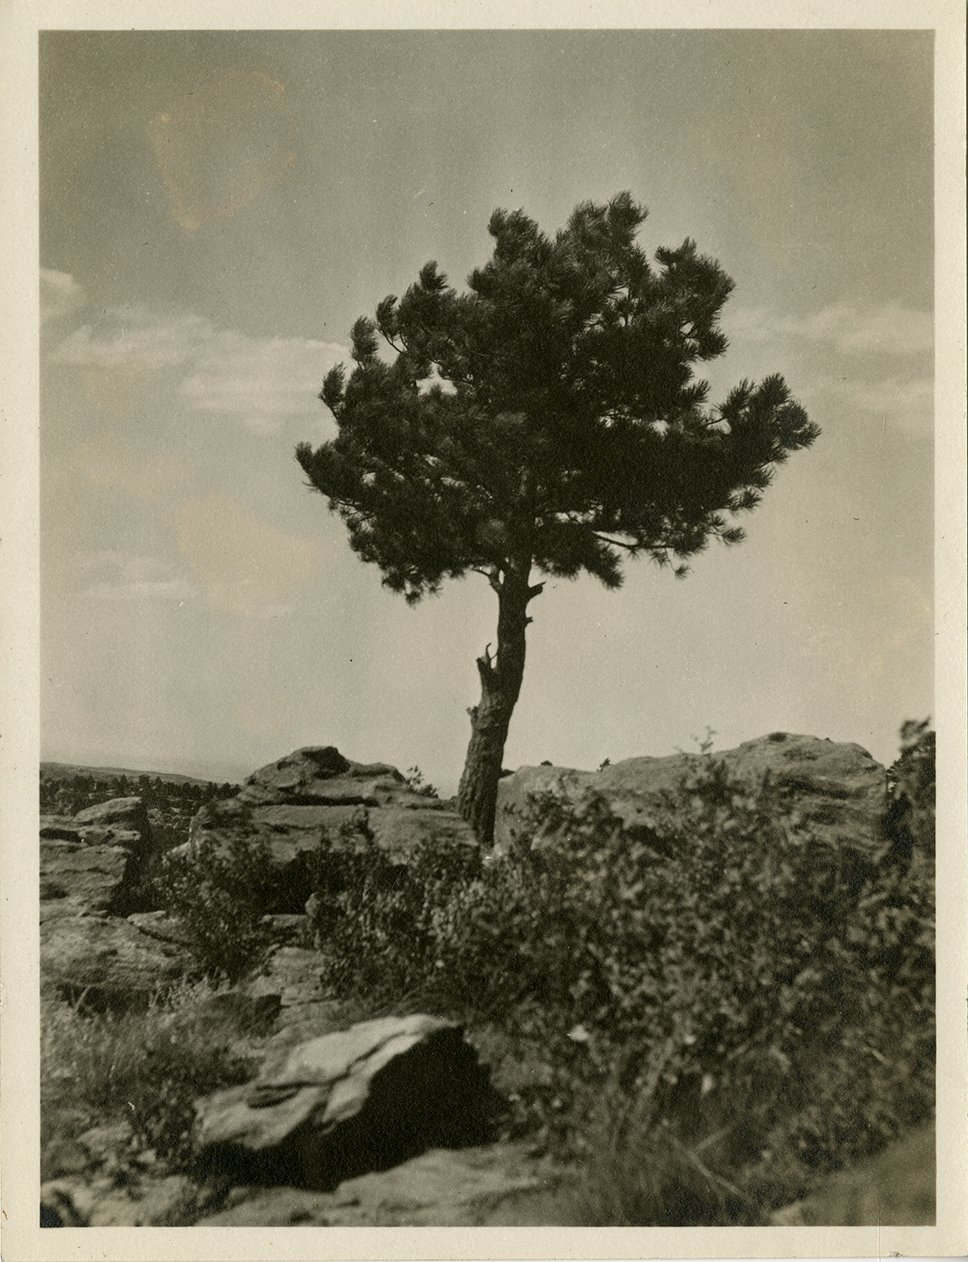 Untitled photograph of a lone pine tree among boulders.